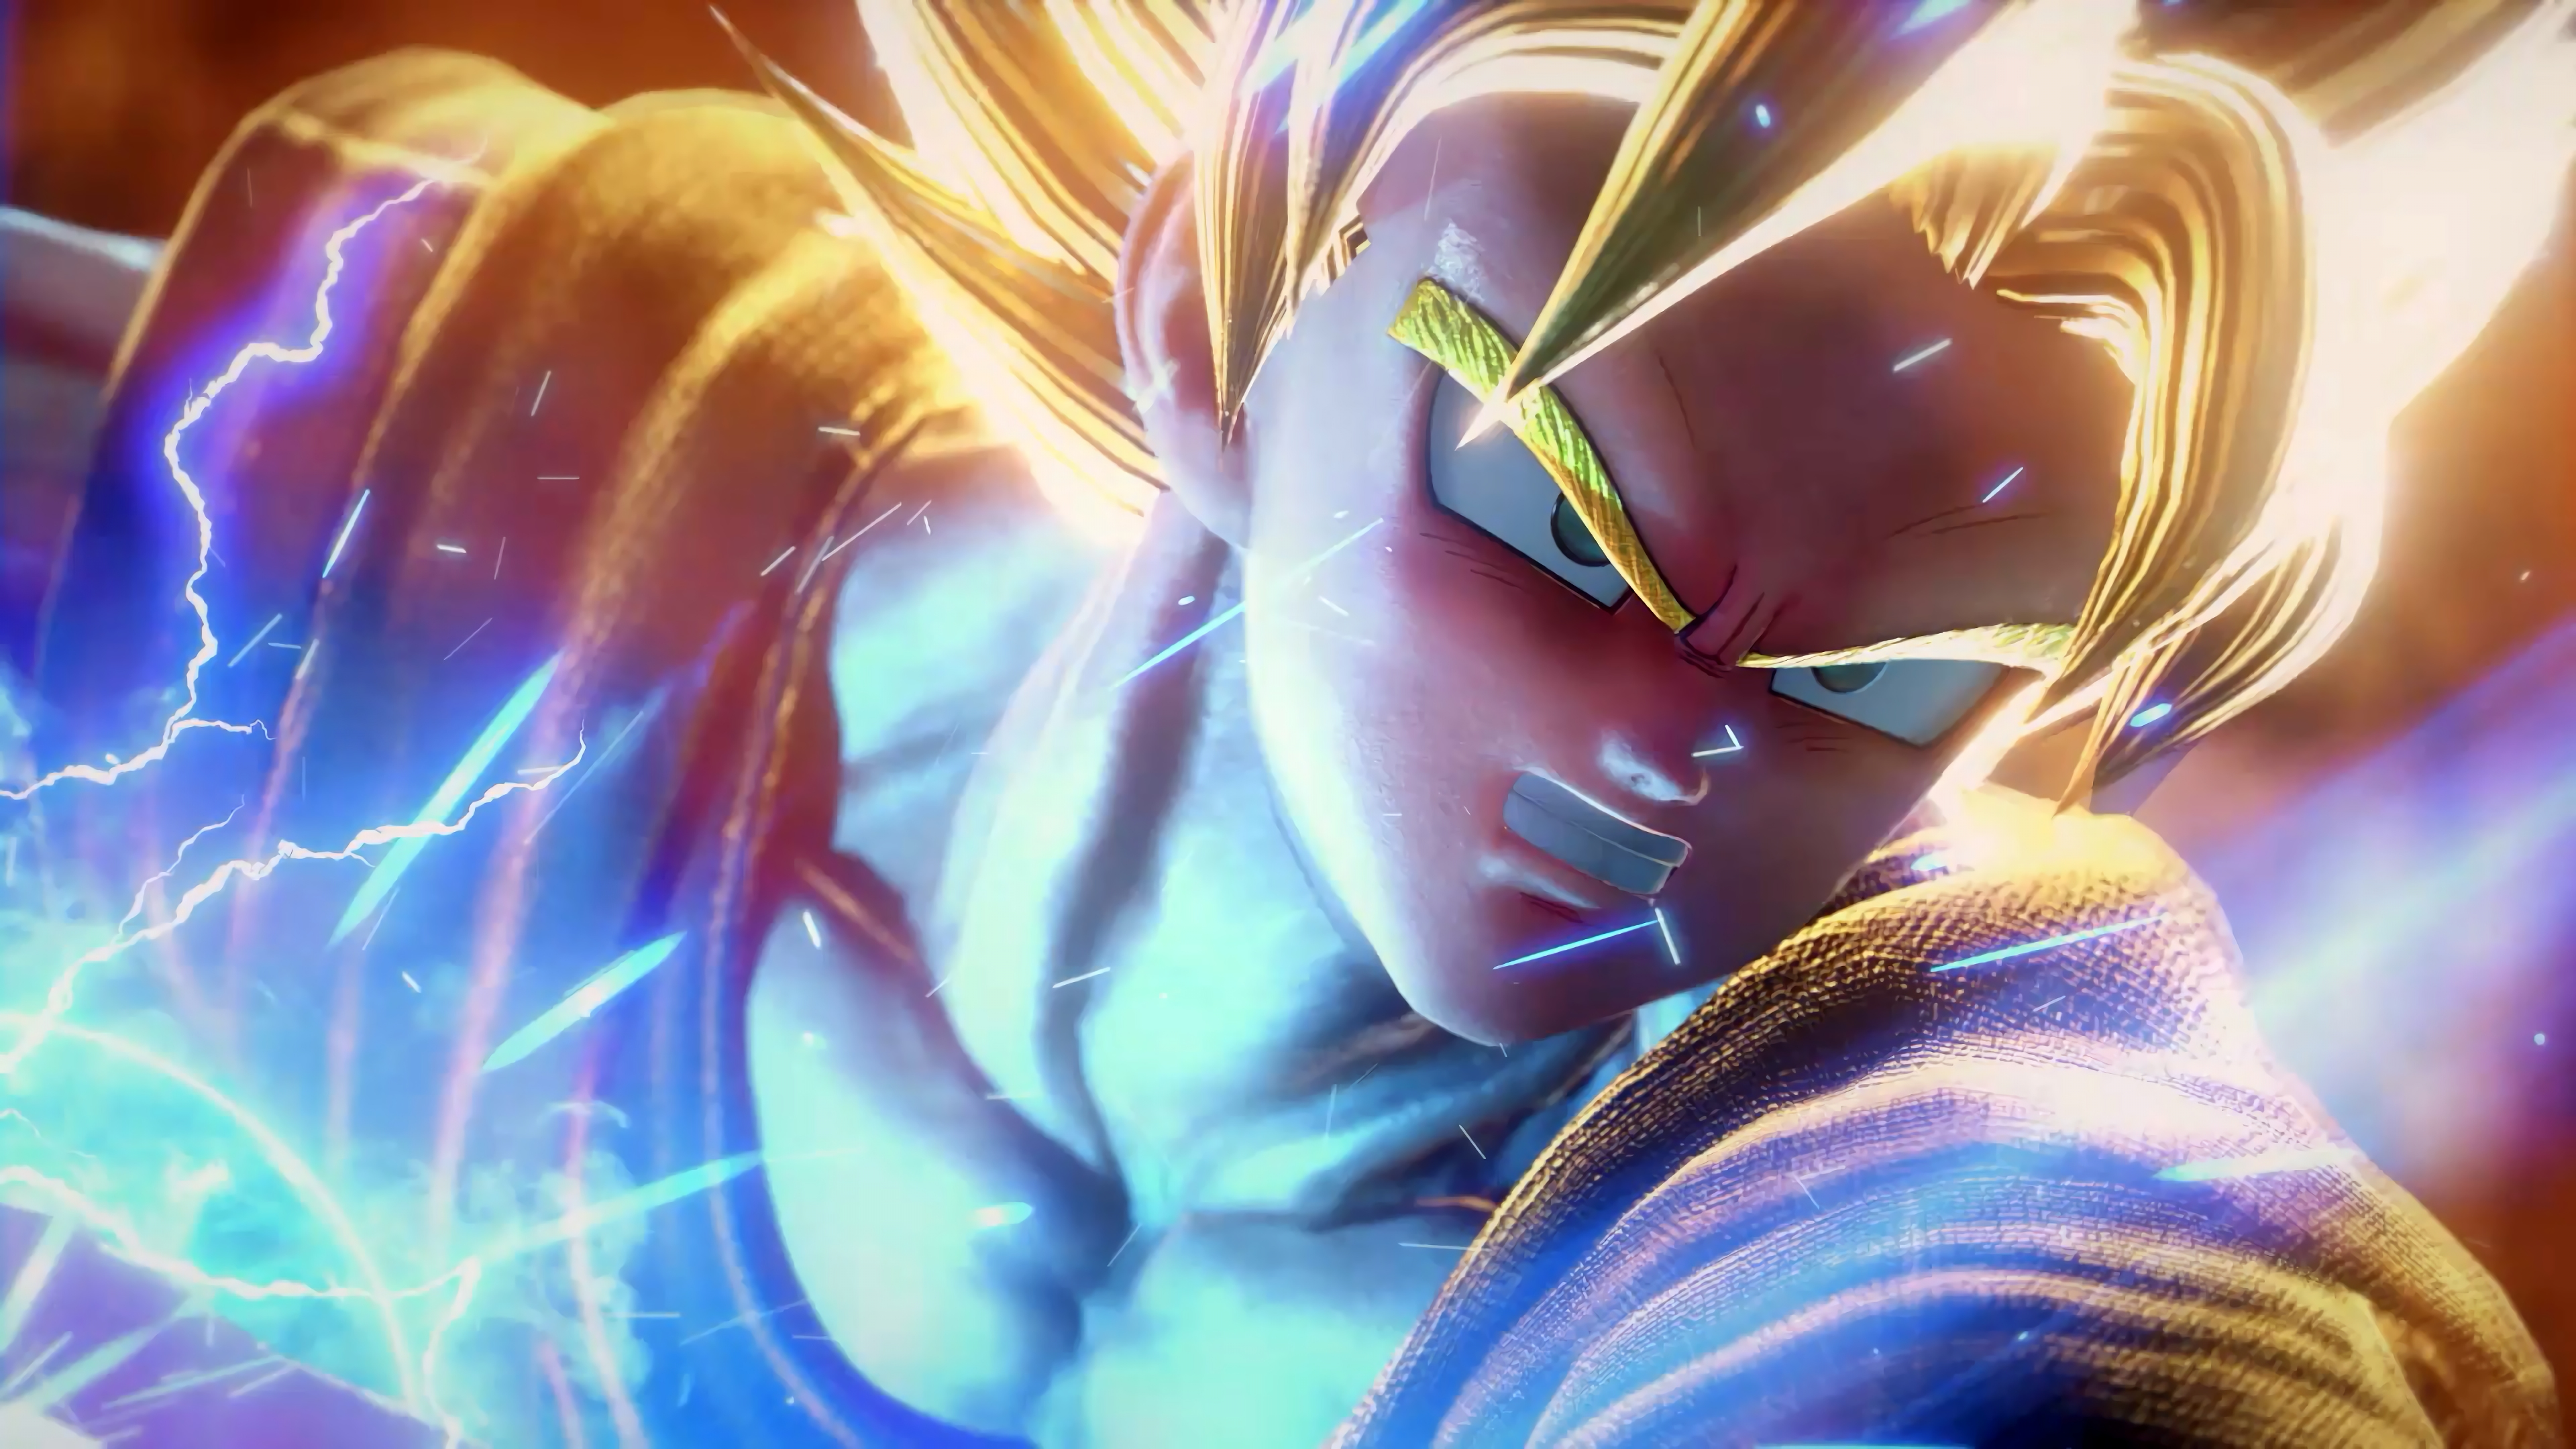 Goku De Dragon Ball En Jump Force Fondo De Pantalla 4k Ultra